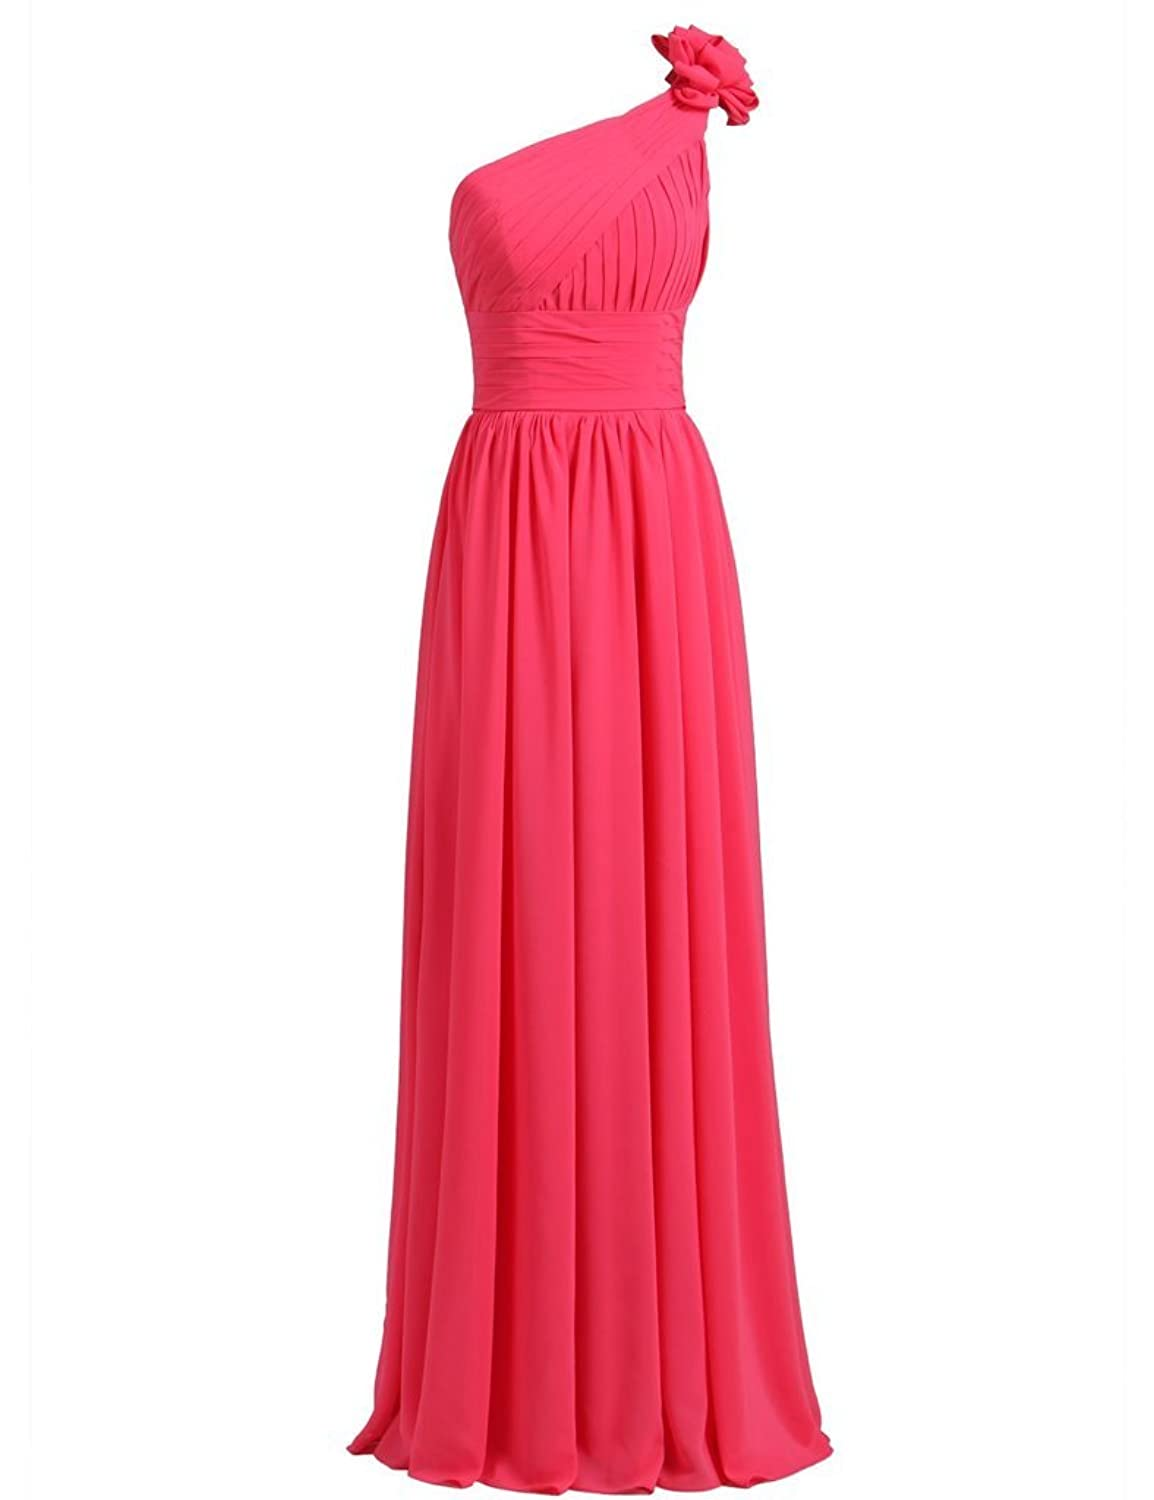 Prommei One Shoulder Long Prom Evening Party Bridesmaids Dress